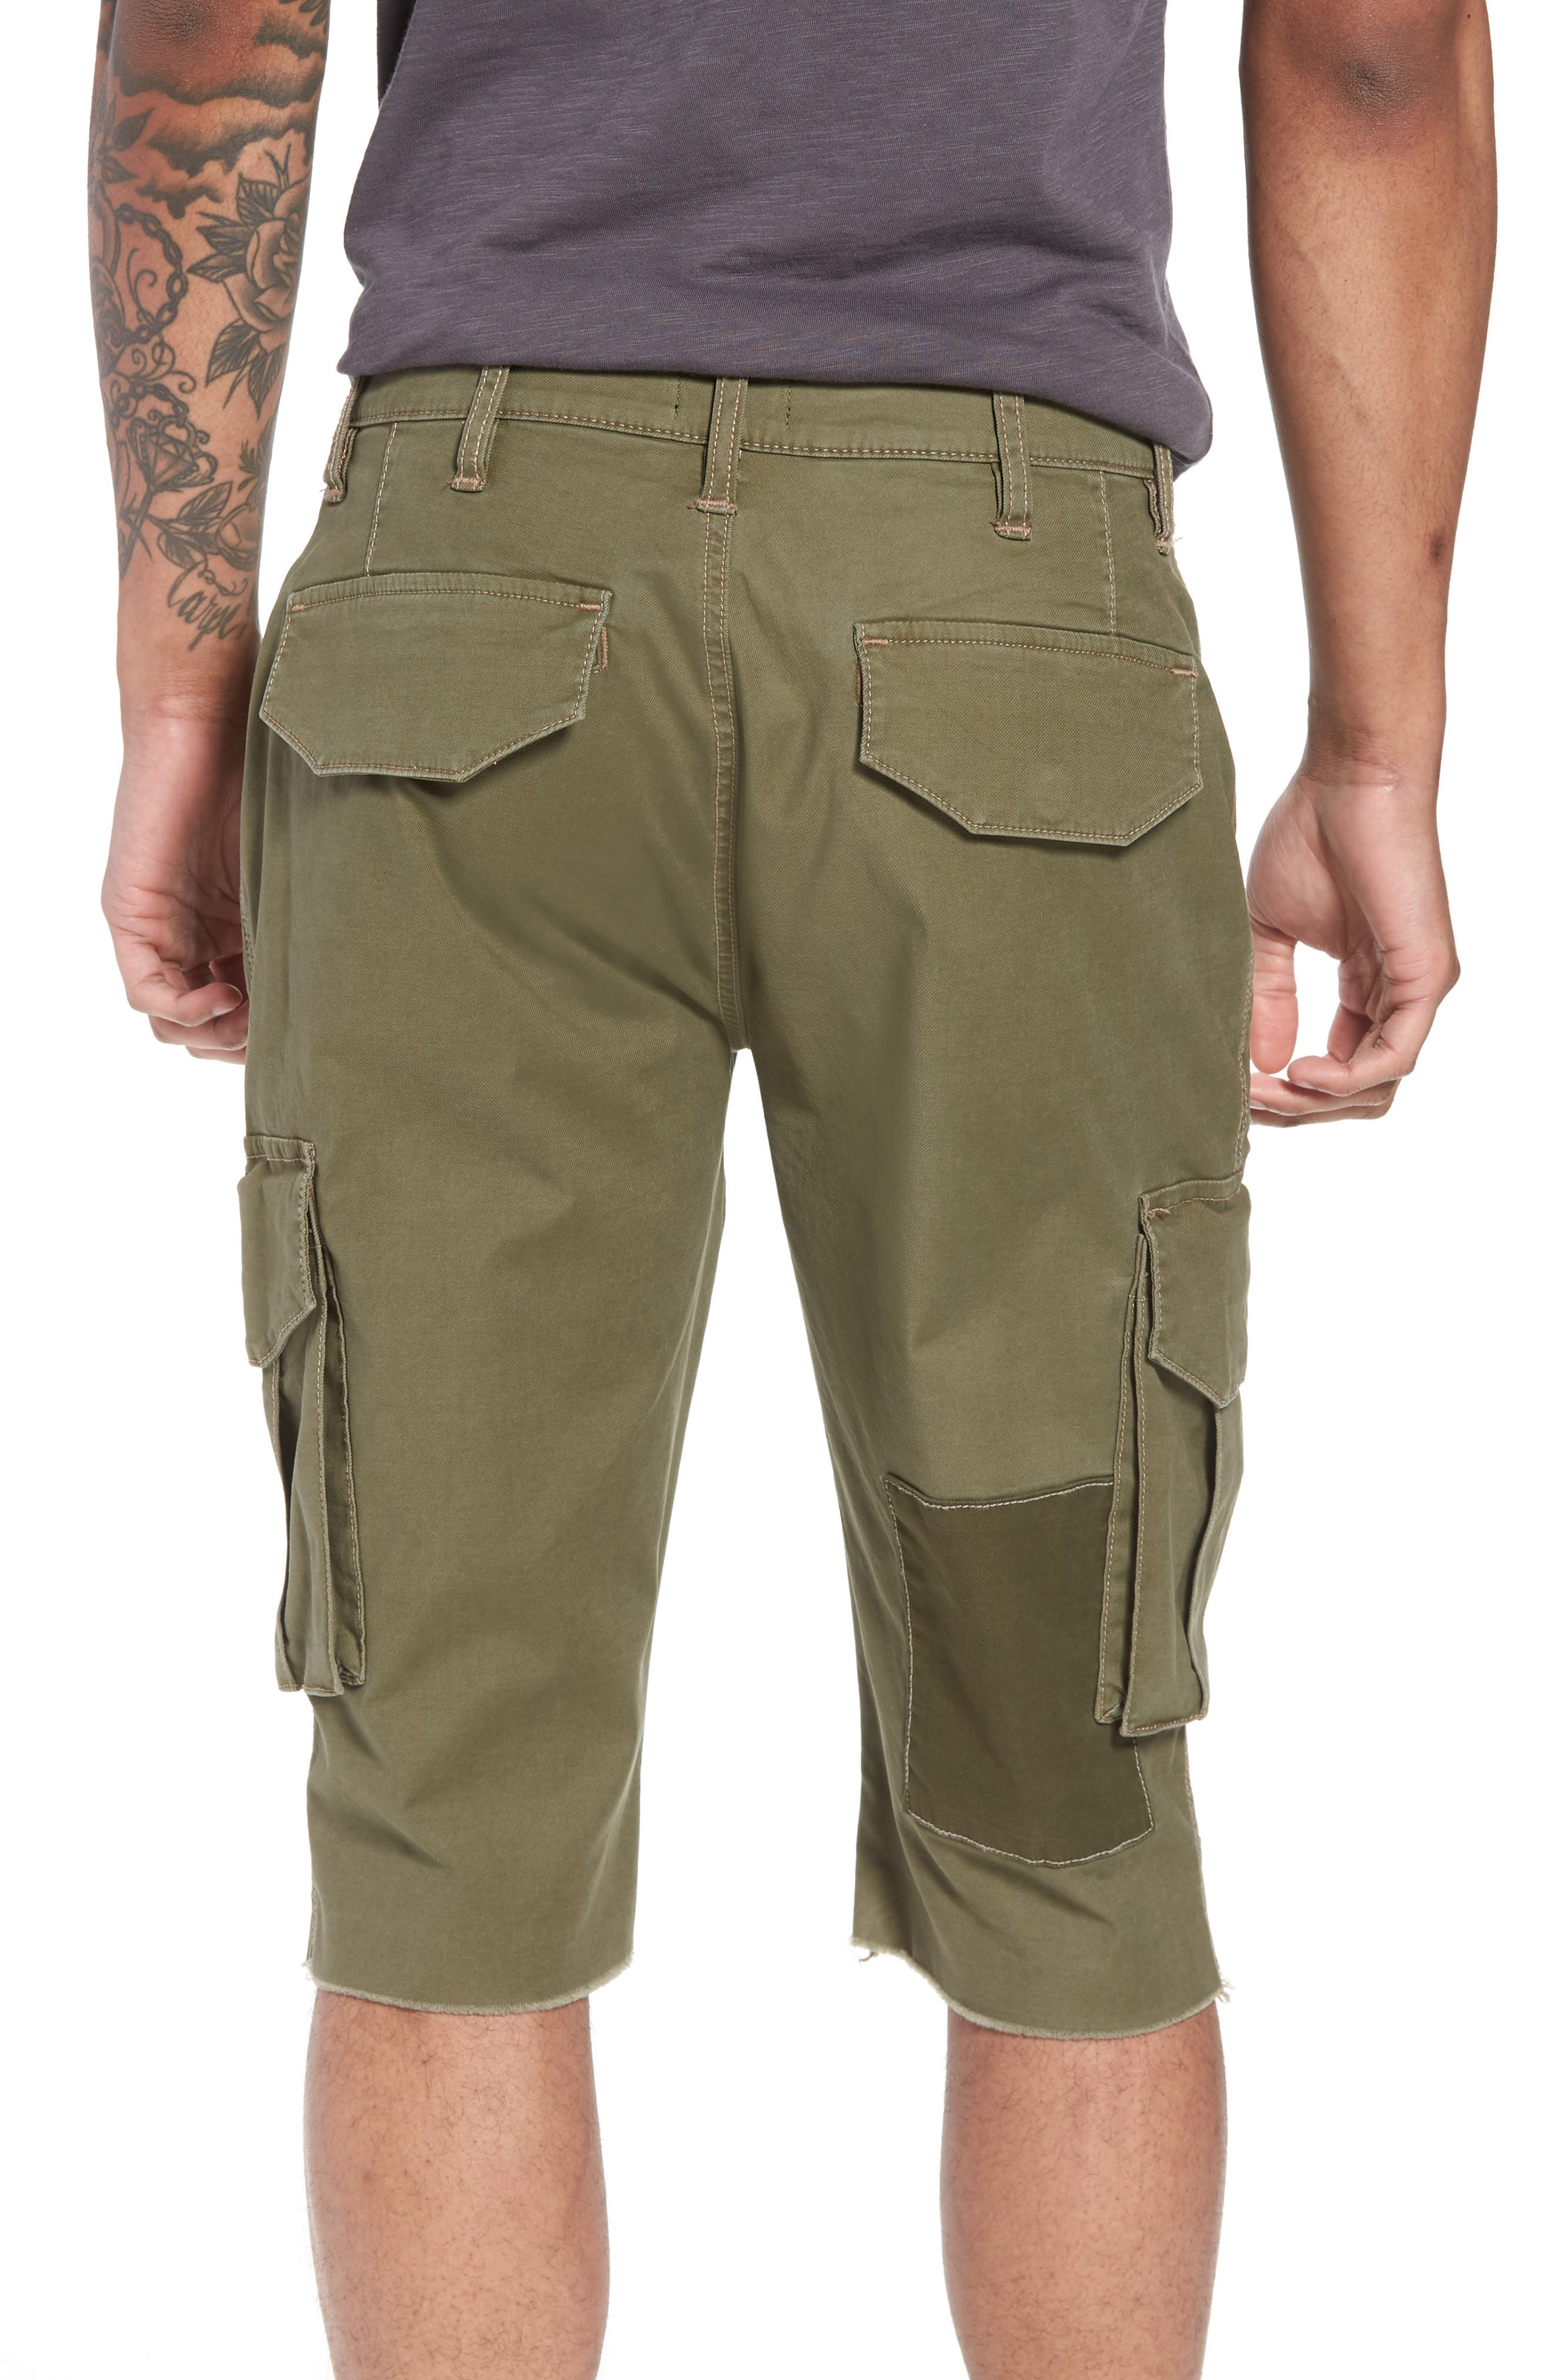 Slim Fit Cargo Shorts,                             Alternate thumbnail 2, color,                             Army Green 2